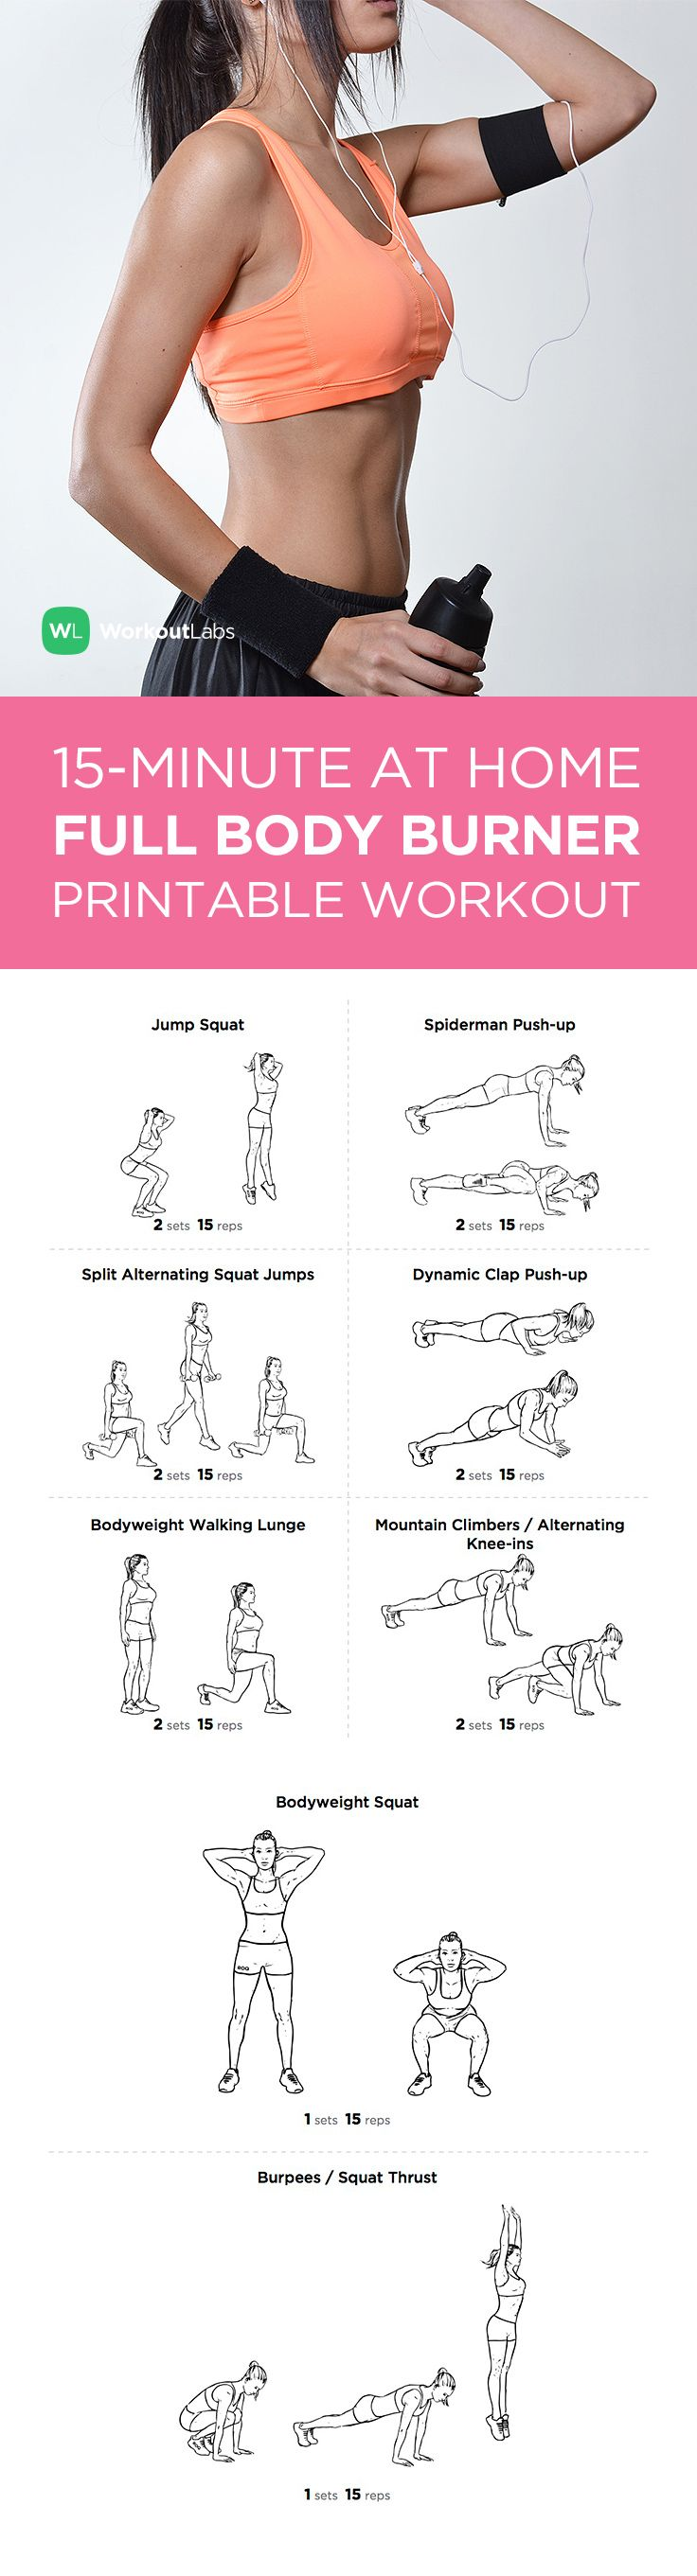 Visit http://WorkoutLabs.com/workout-plans/15-minute-full-body-burner-at-home-workout-for-men-women/ for a FREE PDF of this 15-Minute Full Body Burner at Home Workout for Men & Women